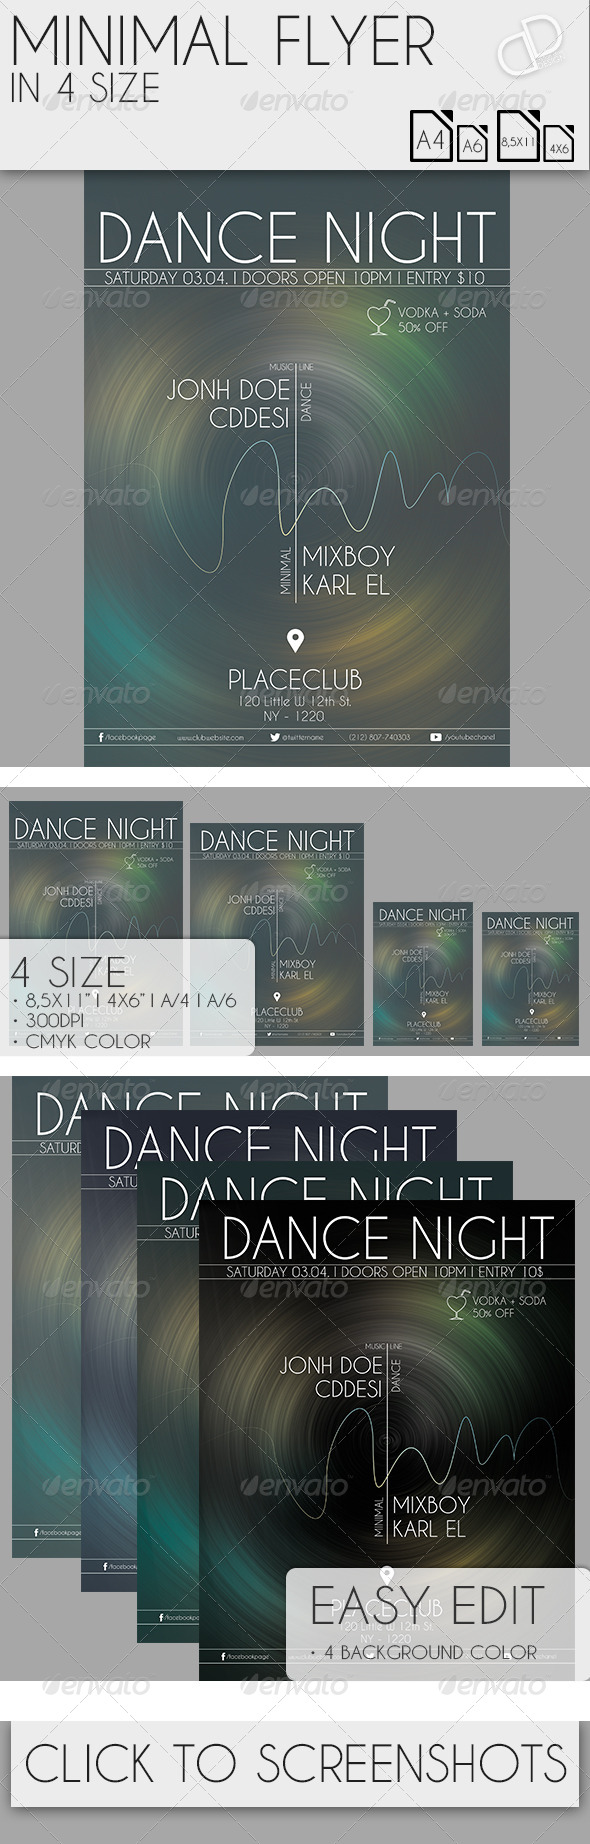 Minimal Flyer in 4 Size - Clubs & Parties Events